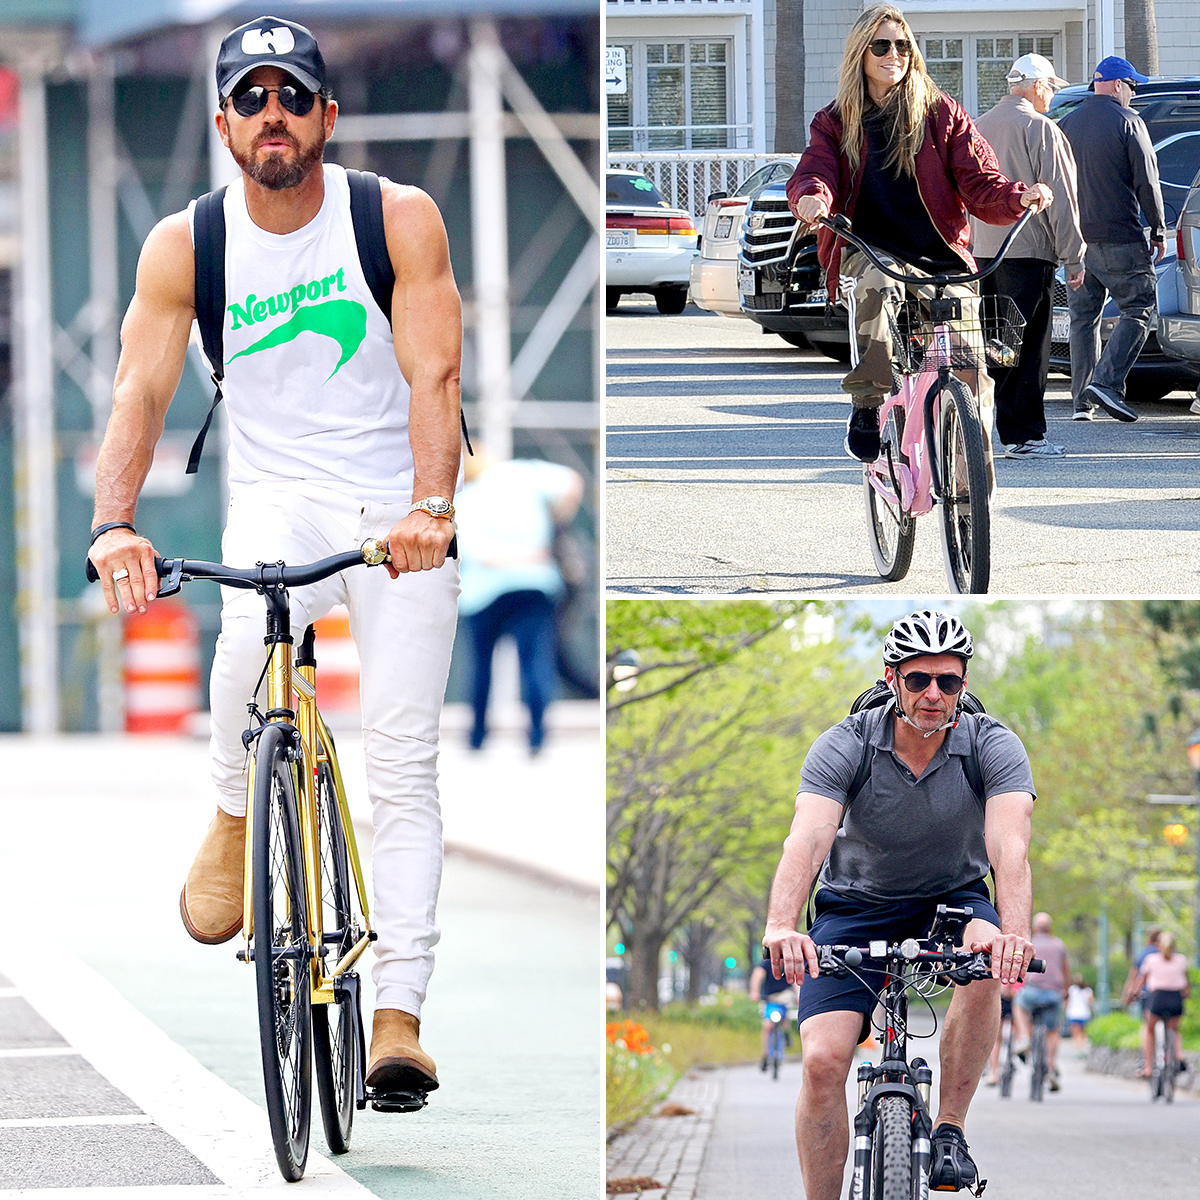 stars-who-bike - Stars on bikes! Forget fancy car services, taxis and Ubers — when it comes to getting around a city or going from point A to point B, plenty of celebrities use their own two legs to bicycle through the streets.